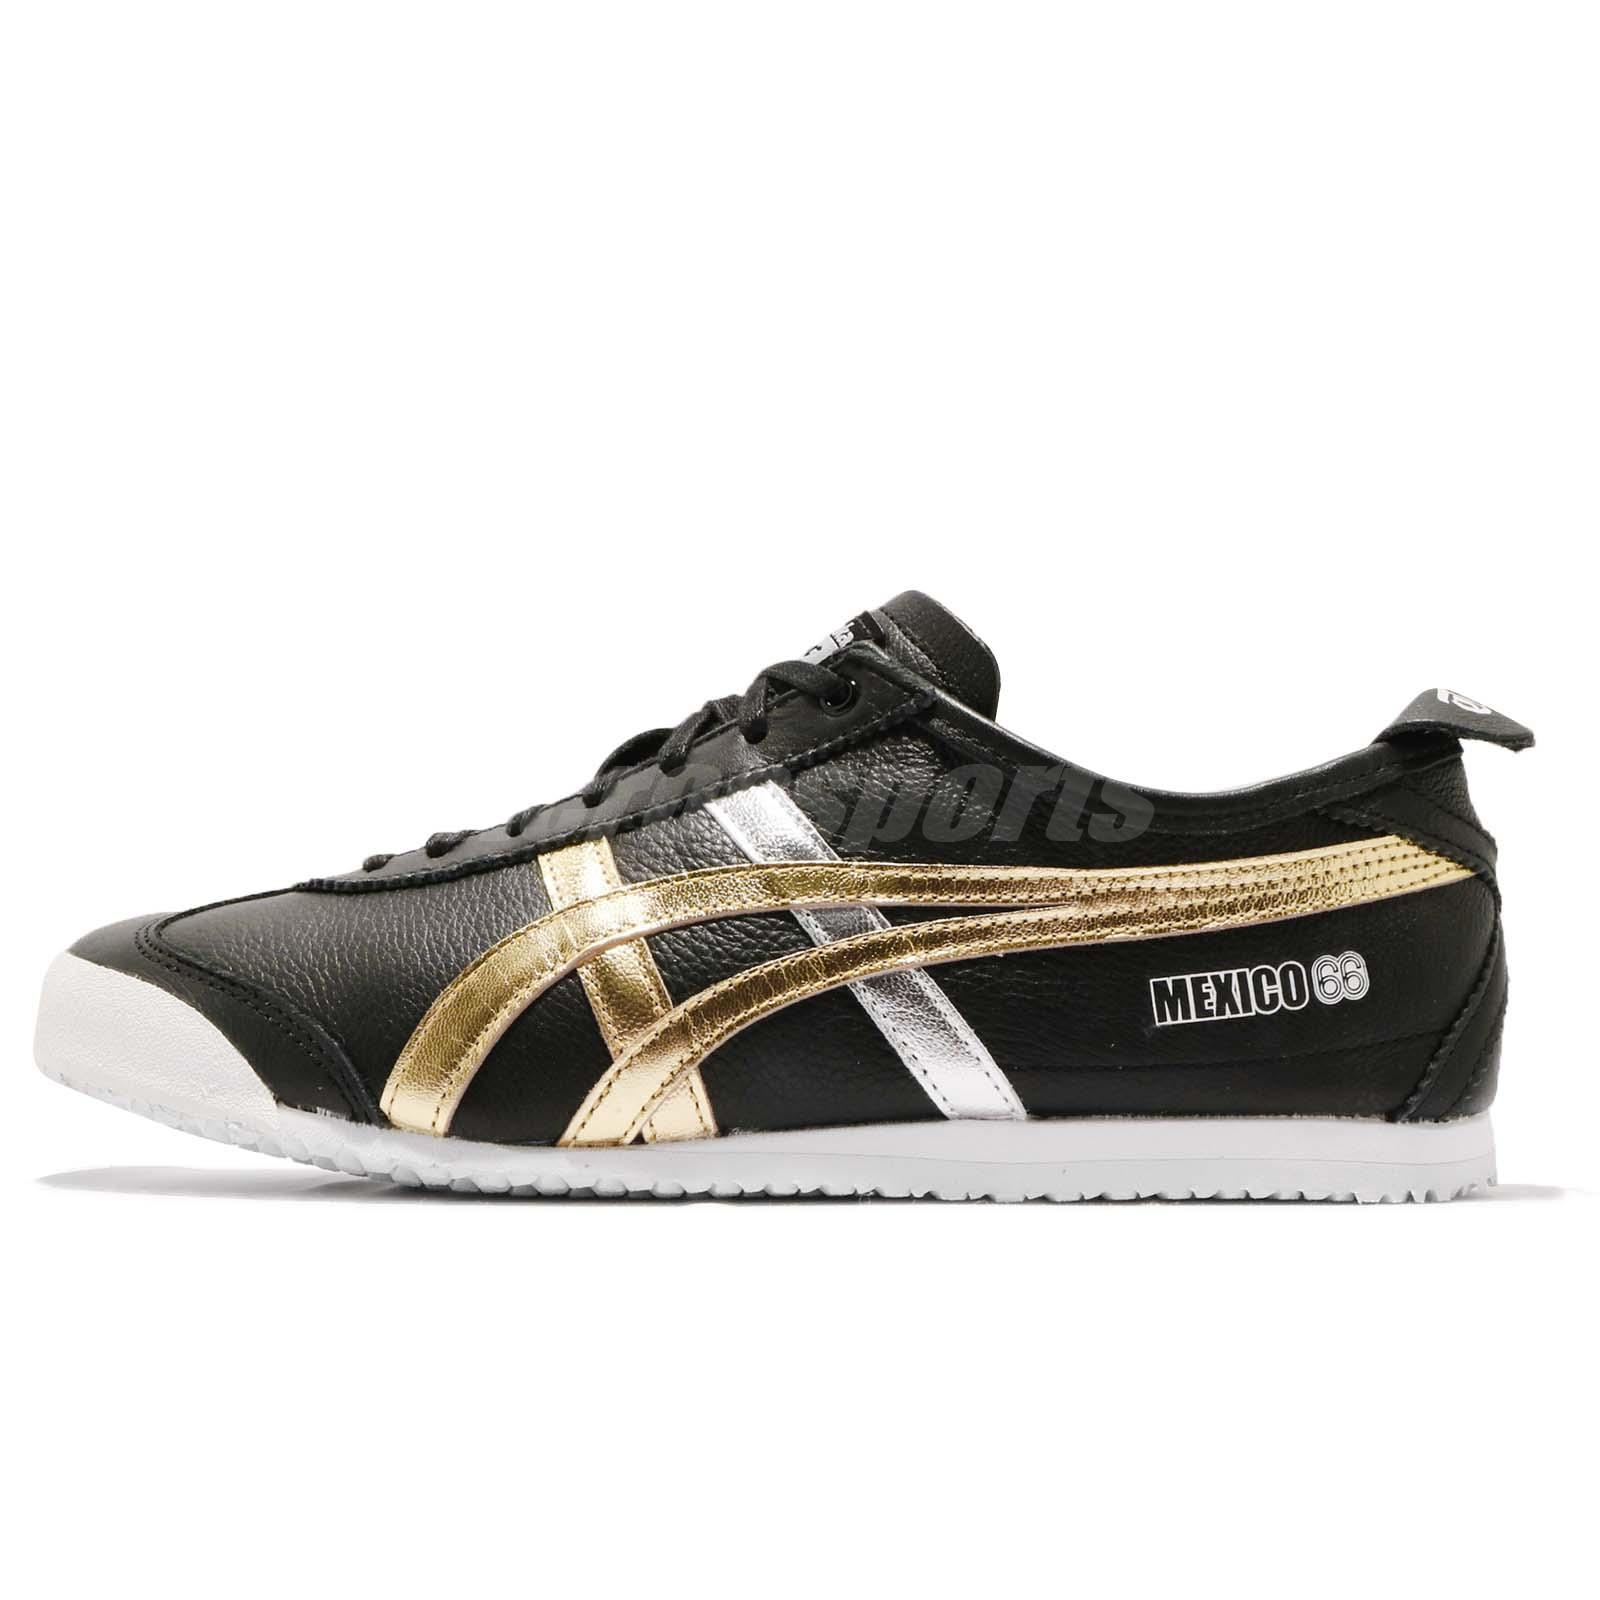 super popular 4151b 6e85e Details about Asics Onitsuka Tiger Mexico 66 Black Gold Men Running Shoes  Sneakers D5V2L-9094